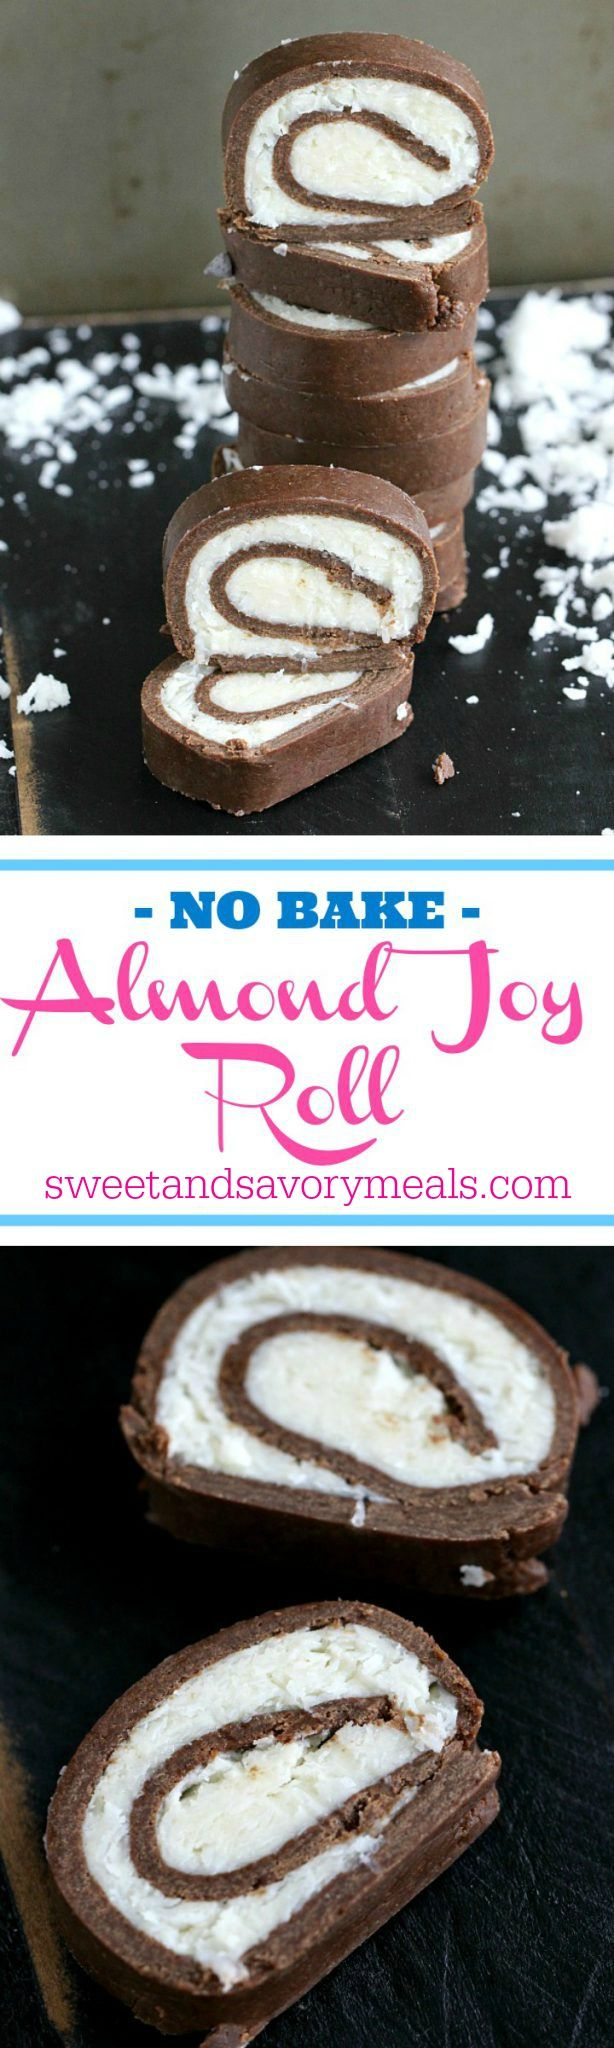 No Bake Almond Joy roll is dense, chocolaty and has a creamy, sweet and smooth coconut filling. Made with just a few ingredients in under 30 minutes. #nobake #chocolate #coconut